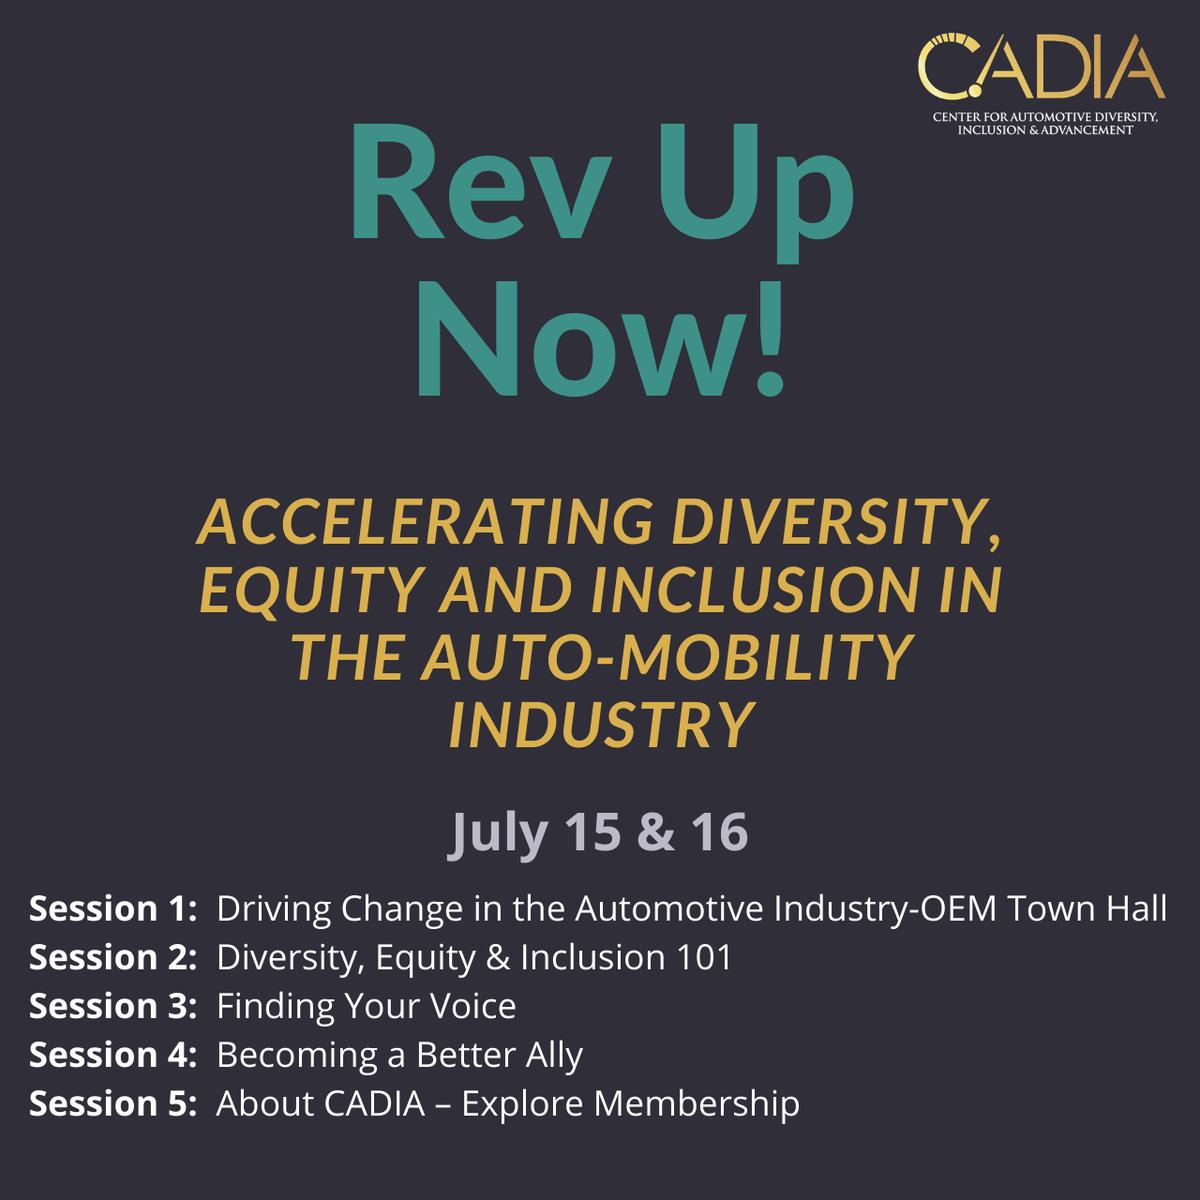 We're proud to work with the Center for Automotive Diversity, Inclusion & Advancement and to sponsor their Rev Up Now event this week. Join us as we continue the dialogue on diversity and inclusion in the automotive industry: https://t.co/qtGgFhfDEl https://t.co/3JQJbBdqJ0